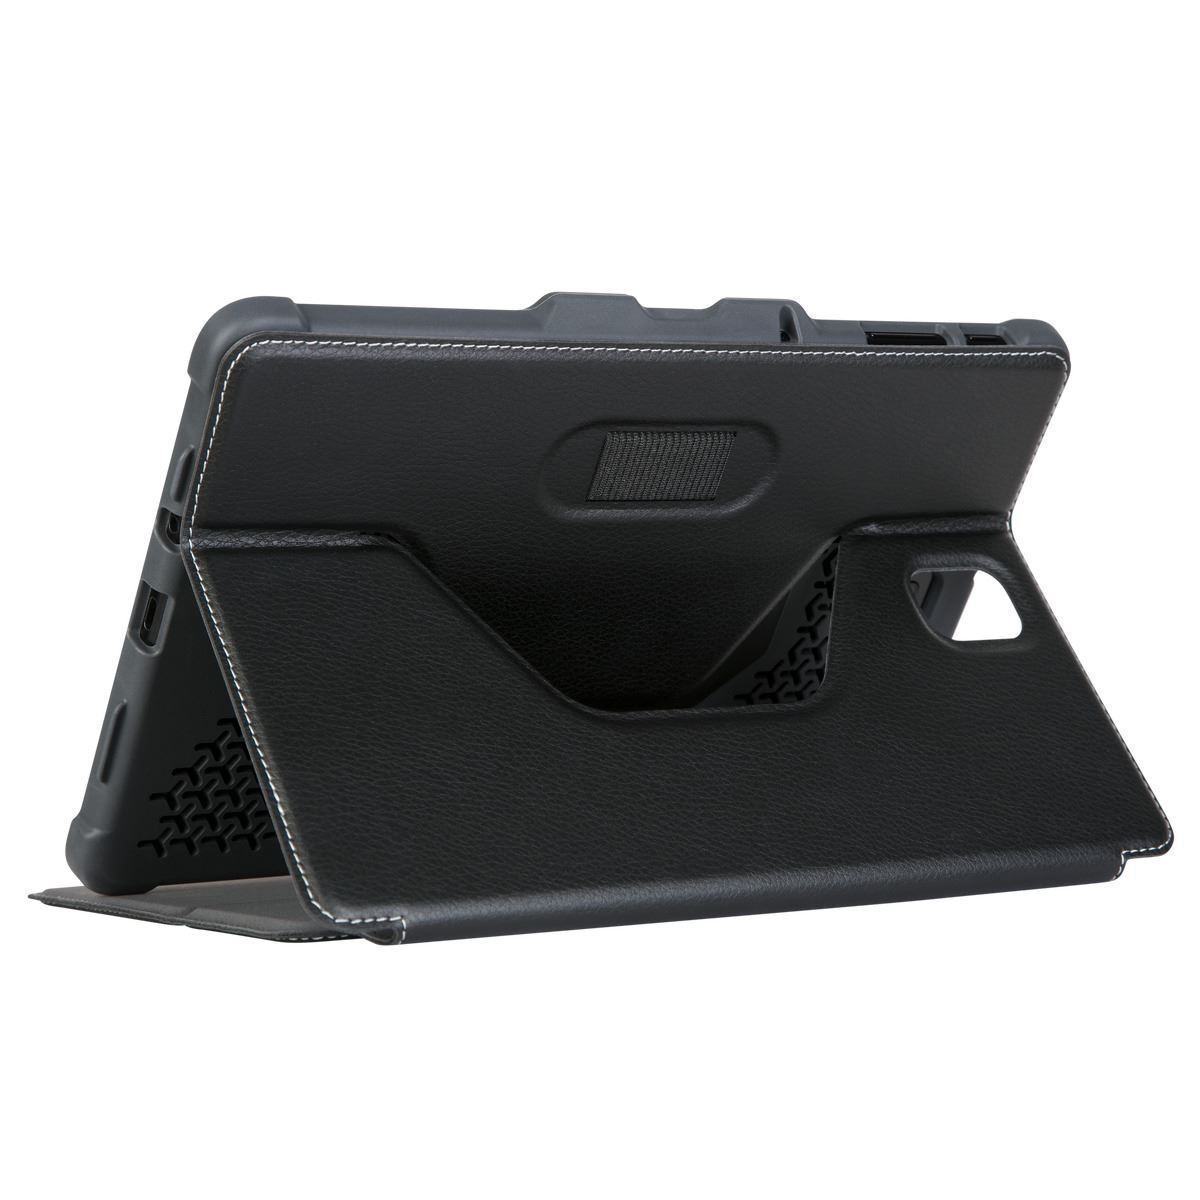 "Picture of VersaVu case for Samsung Galaxy Tab S4 10.5"" (2018) - Black"